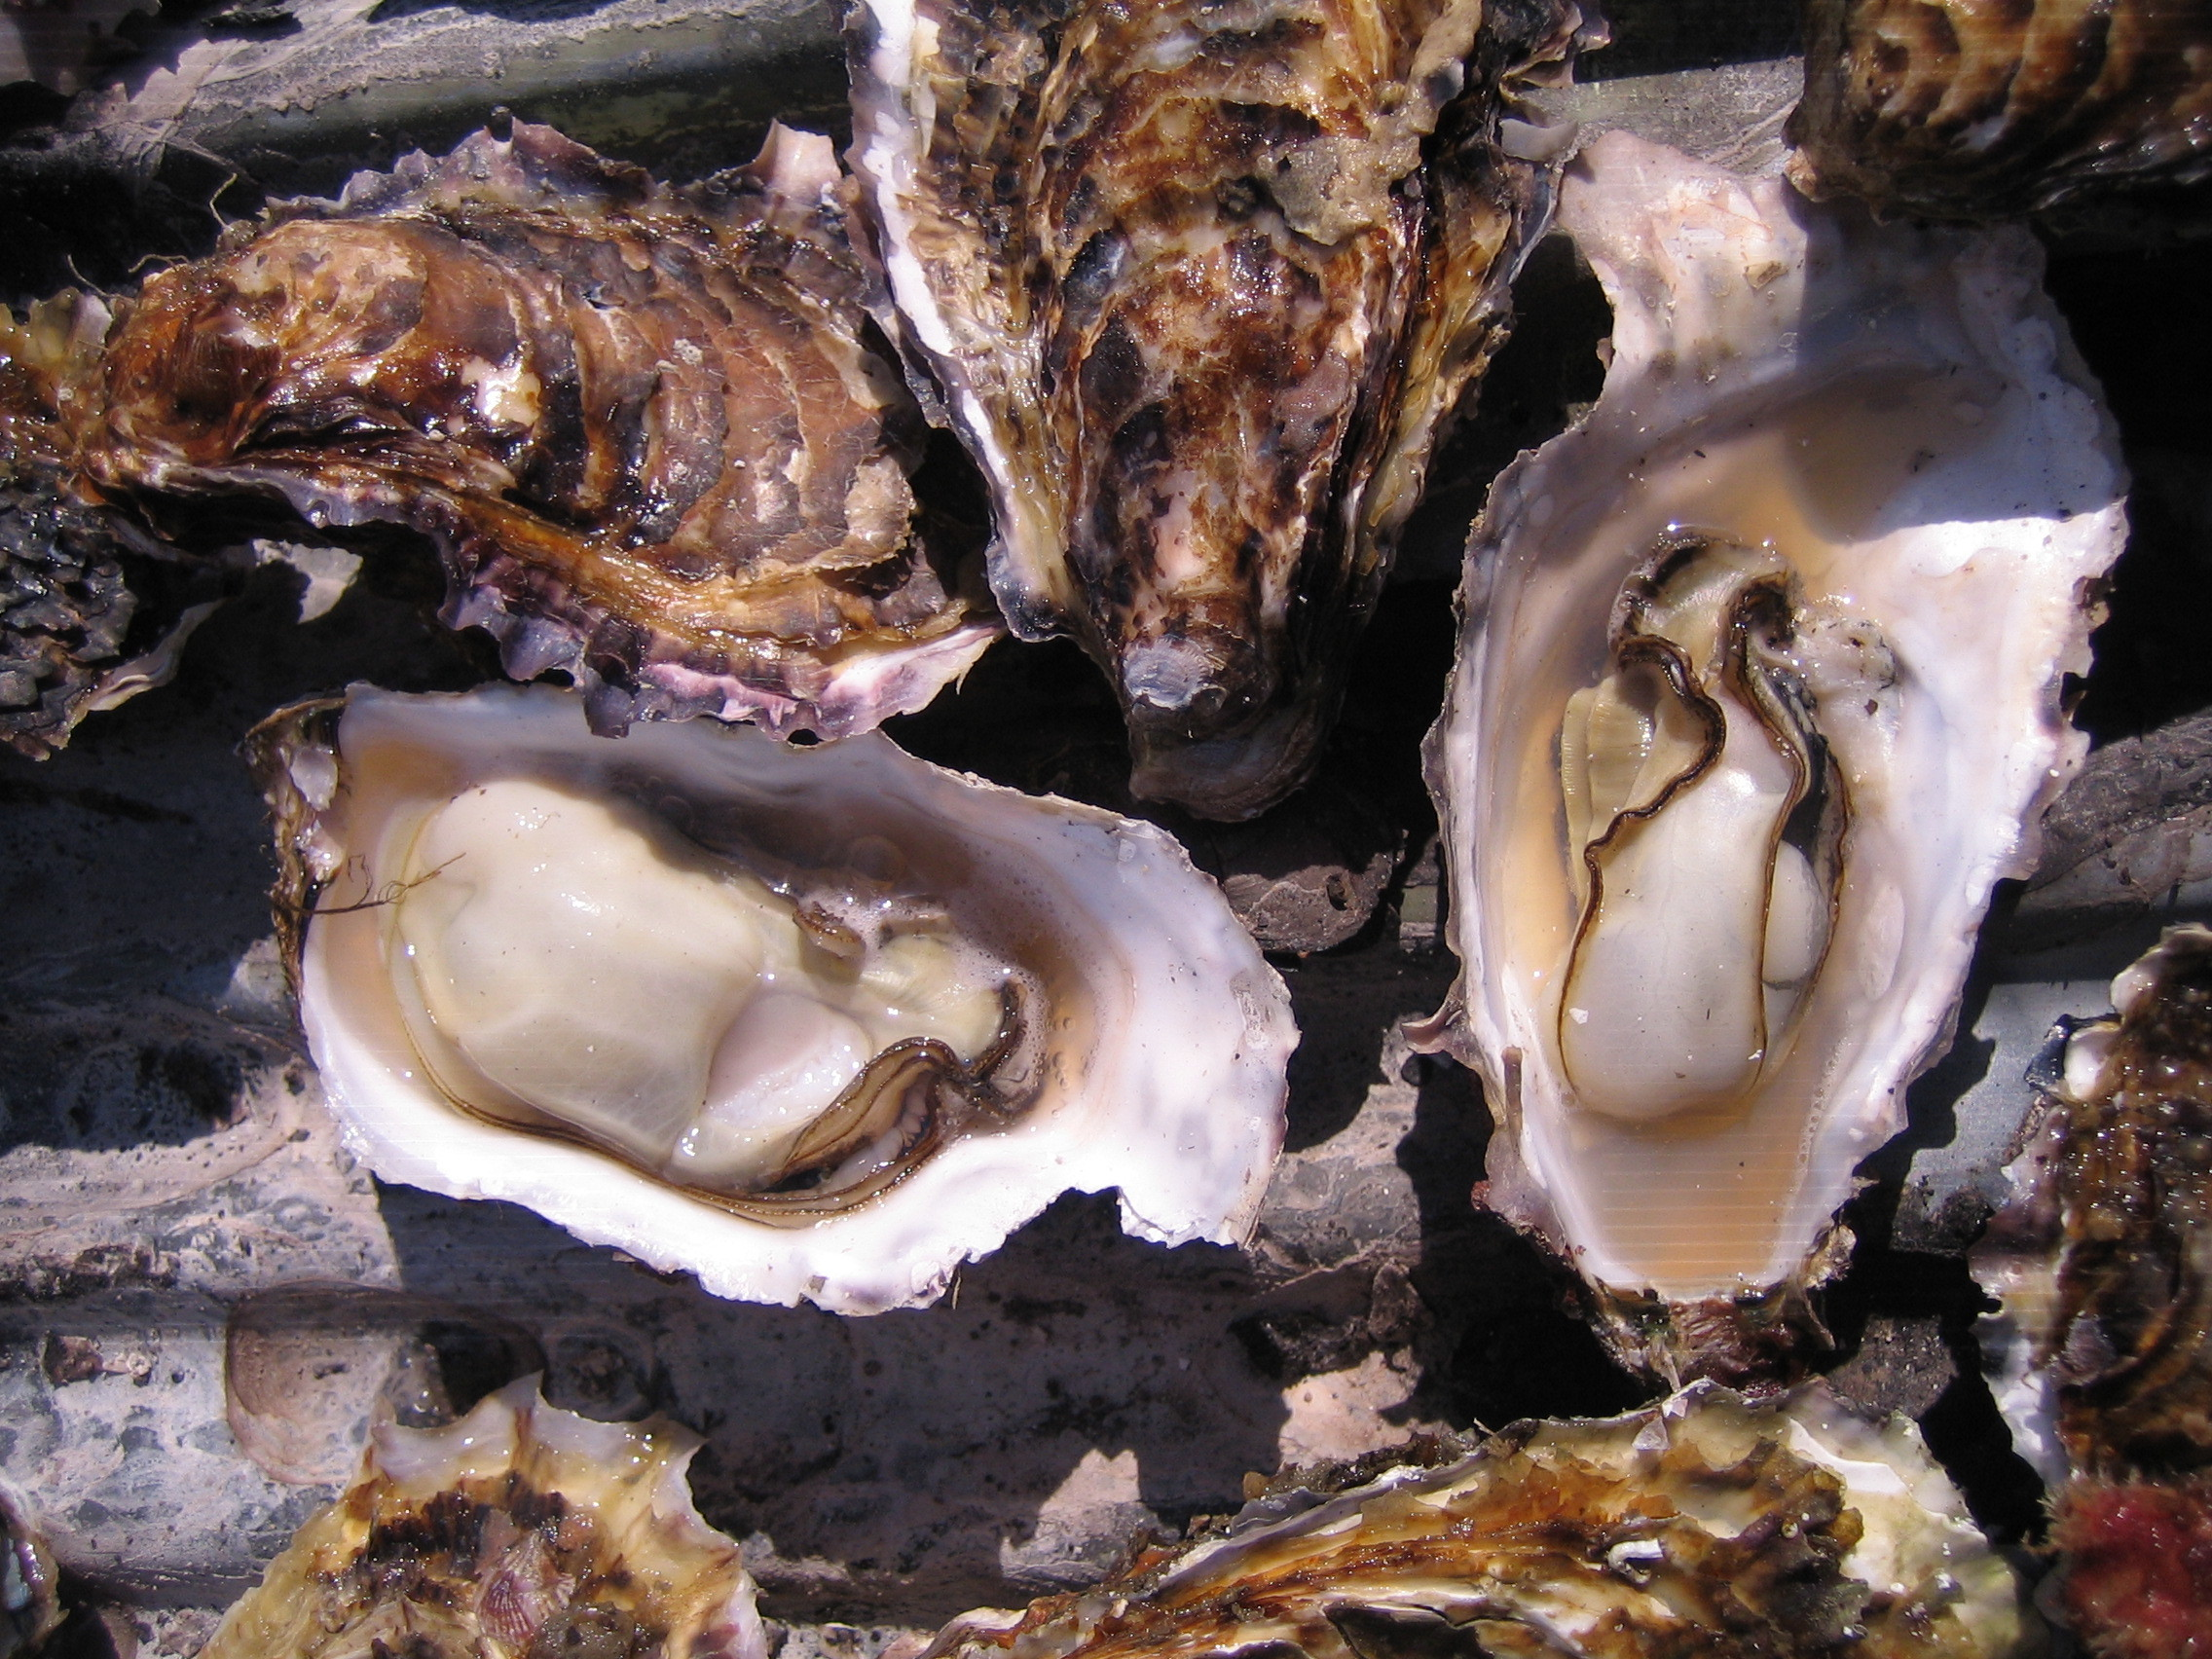 Gorge on fresh oysters